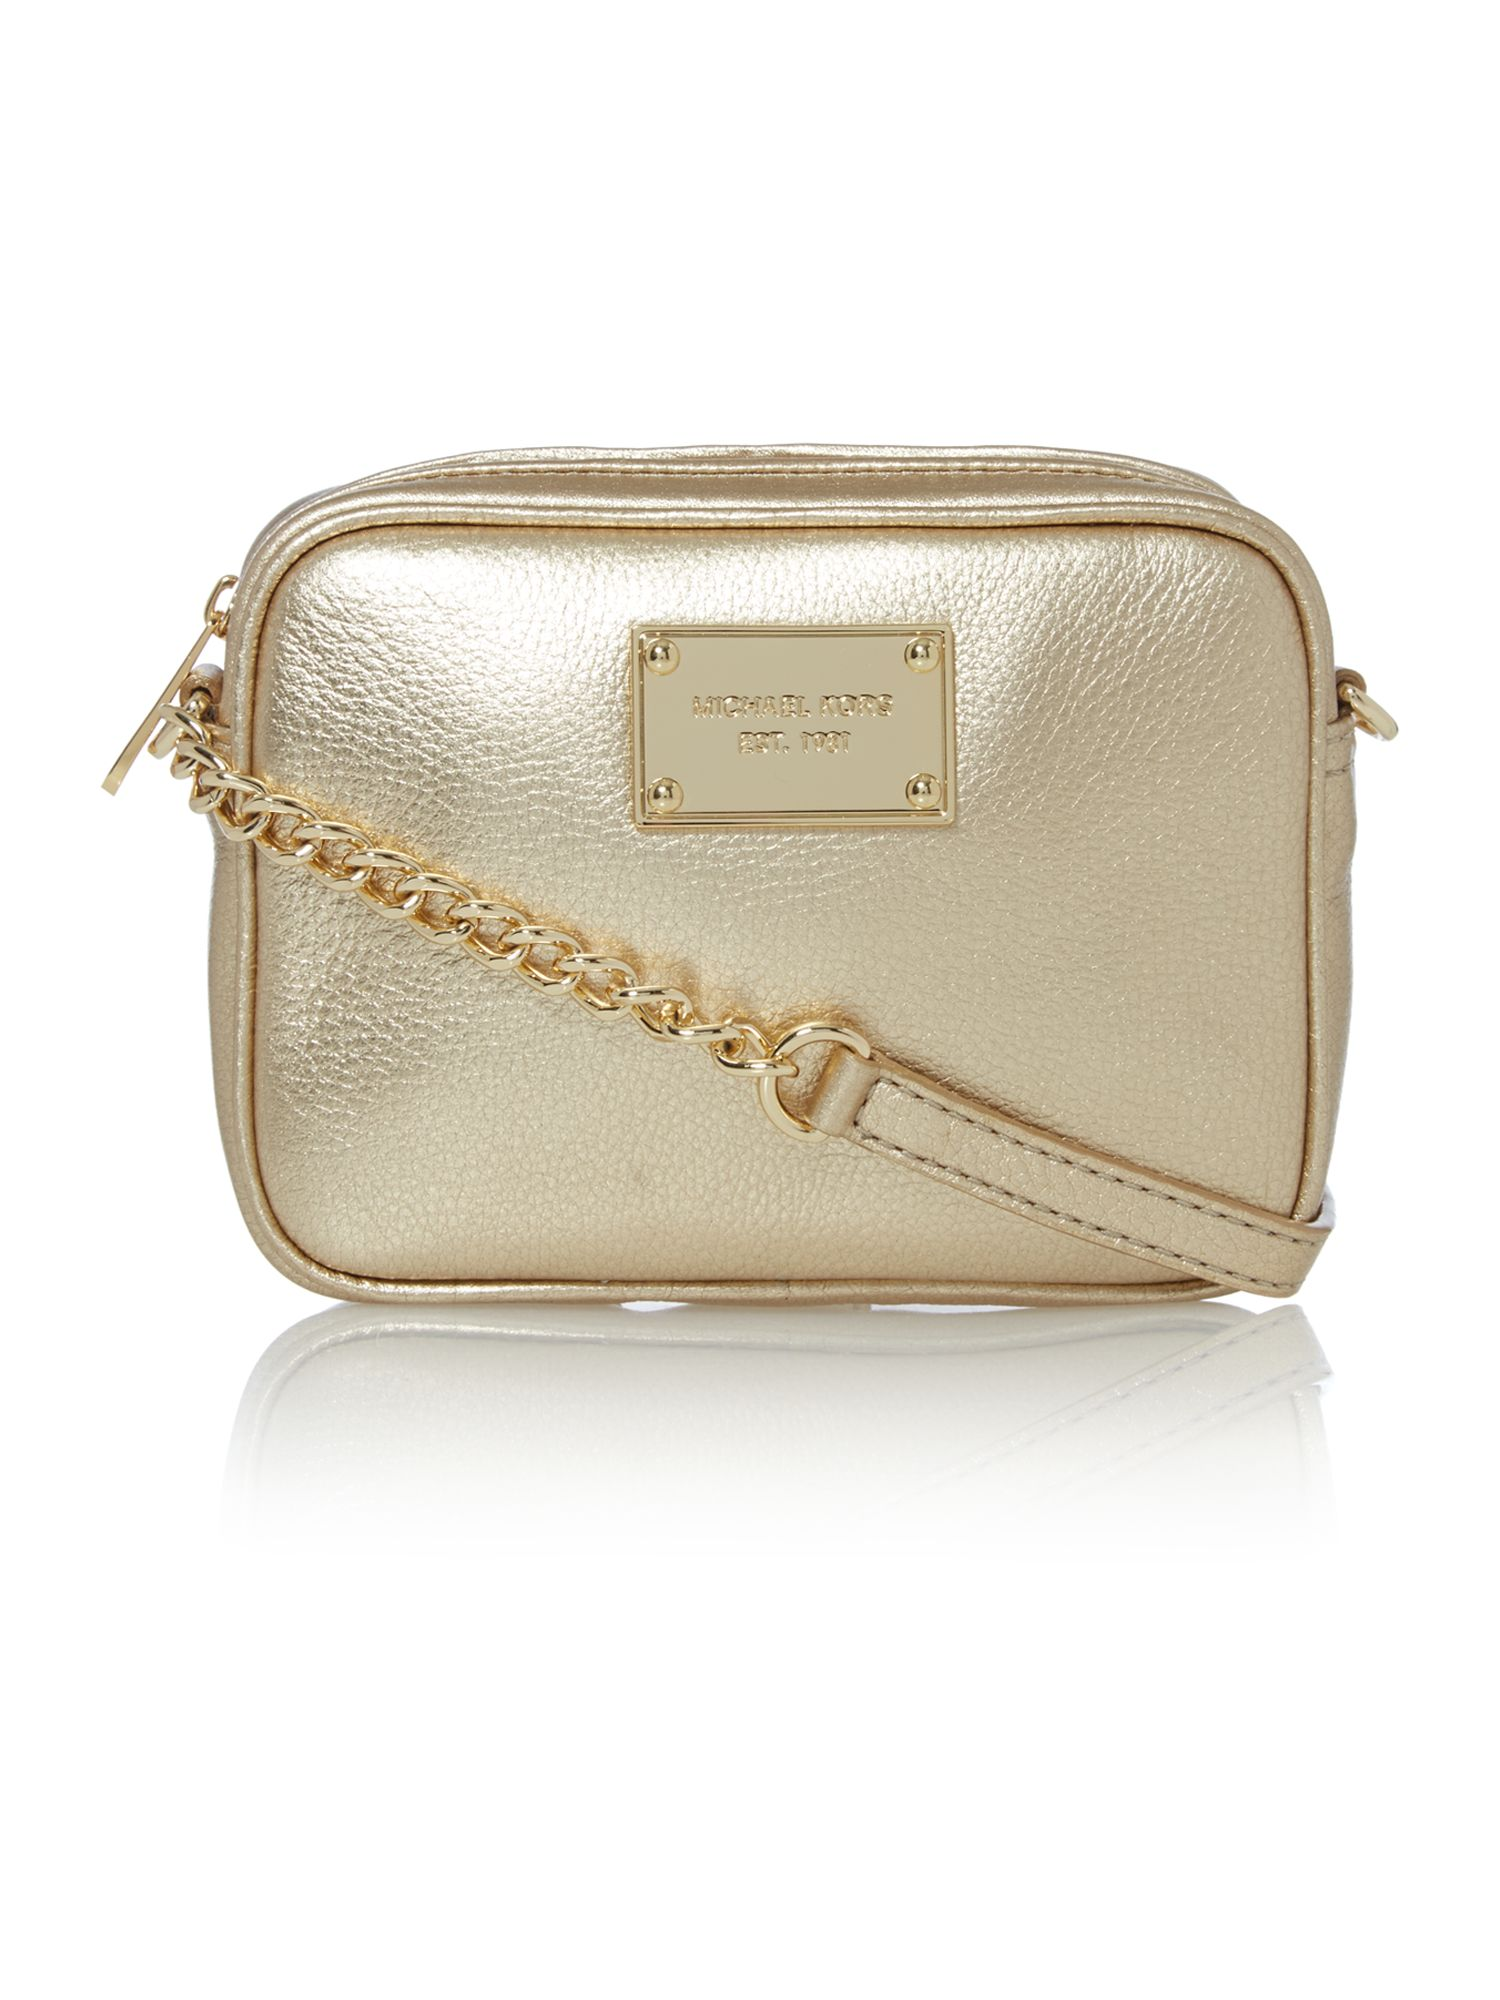 Jet Set Item gold cross body bag